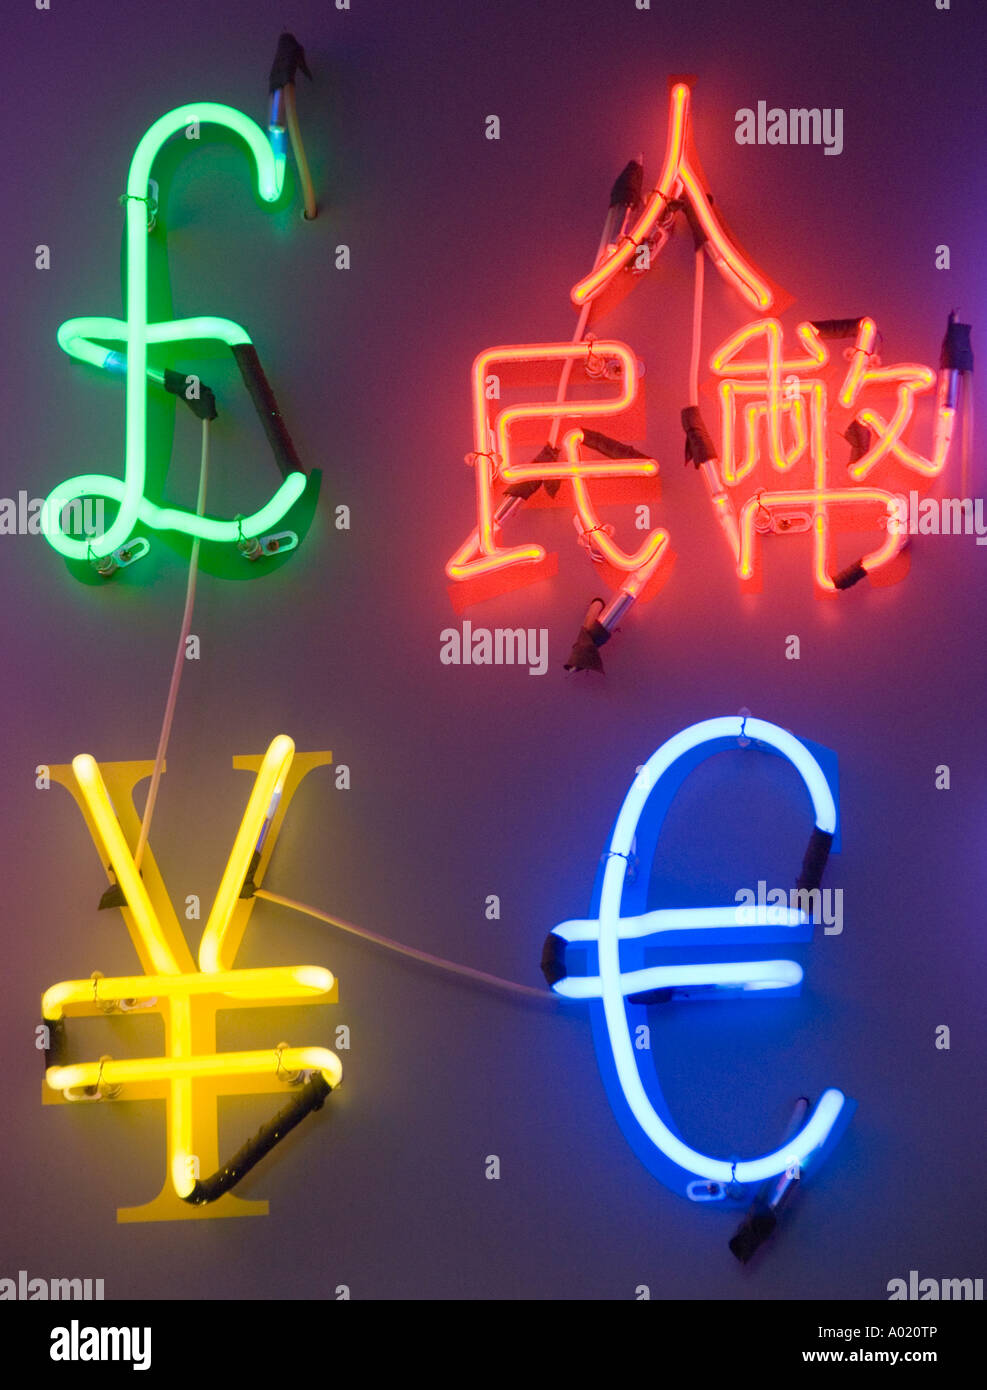 Neon signs in shape of foreign currencies in Hong Kong - Stock Image